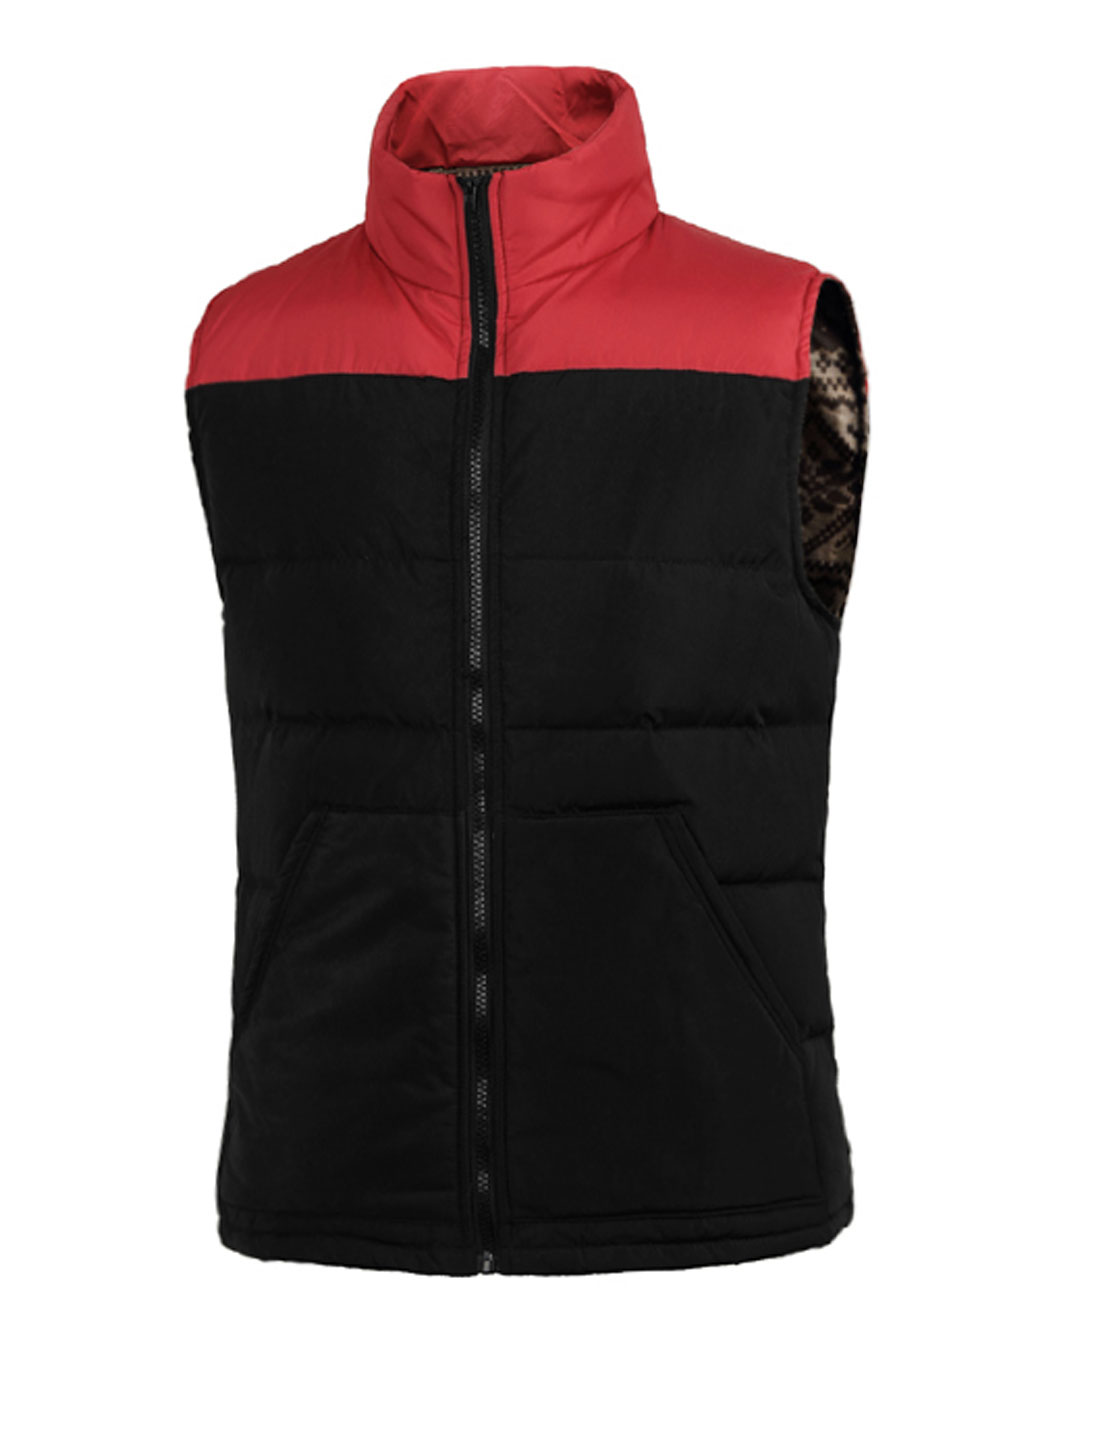 Men Sleeveless Color Blocking NEW Padded Vest Red Black M